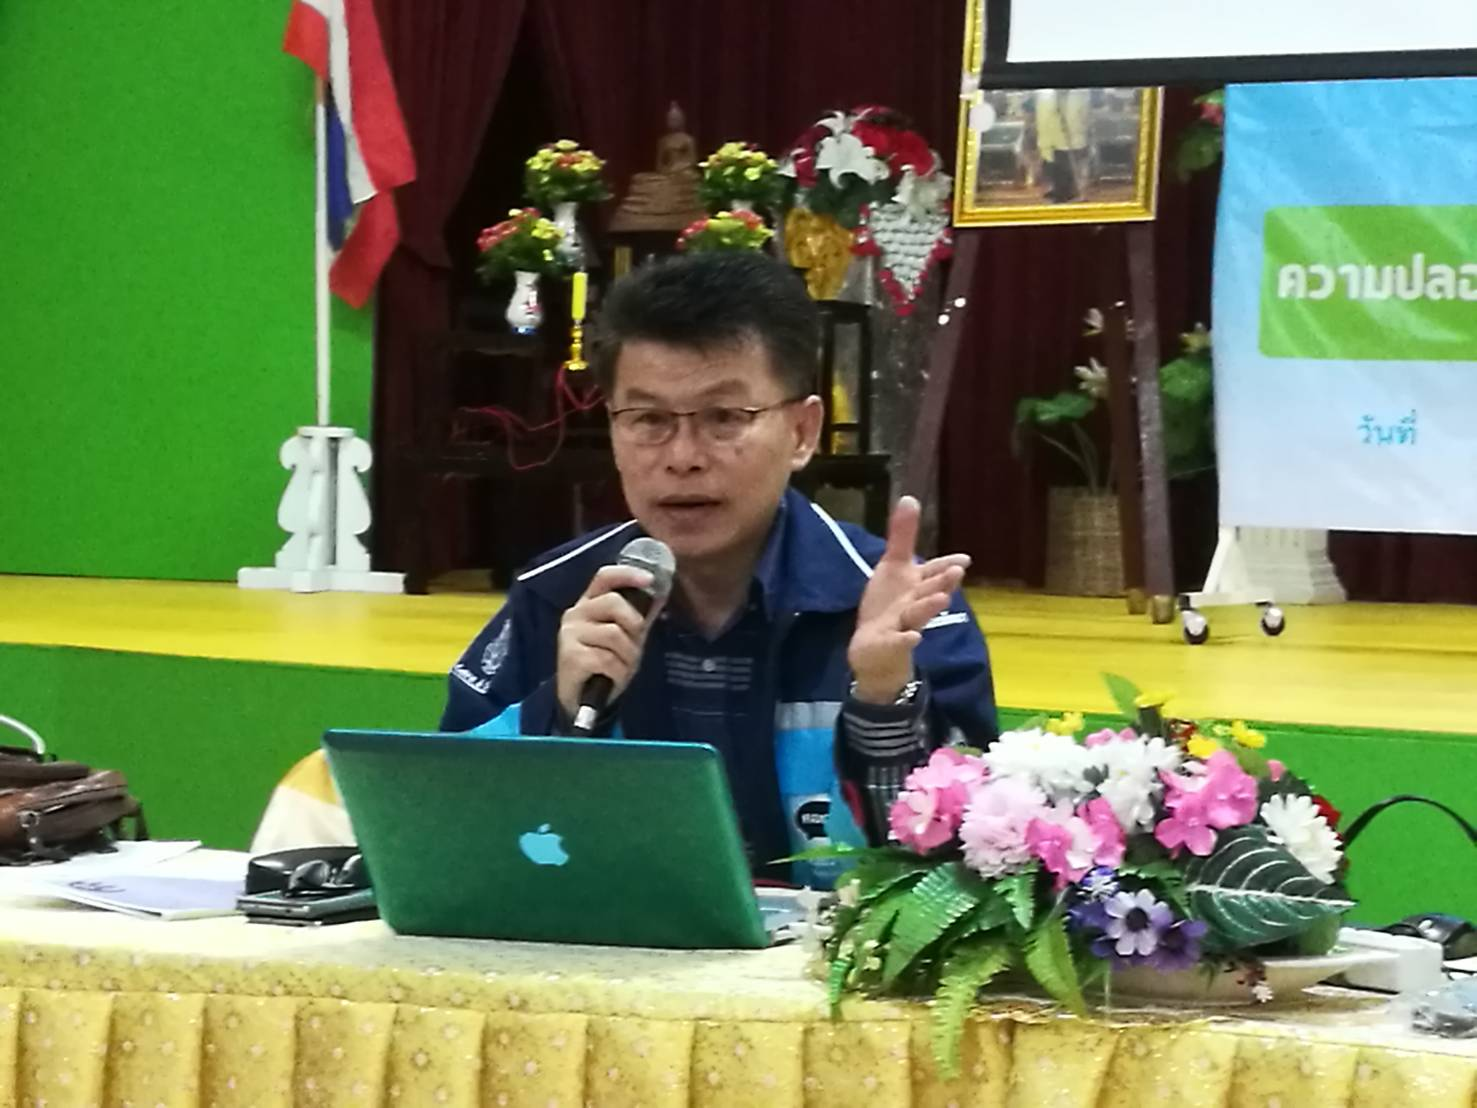 The city's complaint center executive Chaiwat Klisanalom chairs a meet-up at Pattaya School No. 6 where he provided knowledge and advice on how to solve problems in local communities.